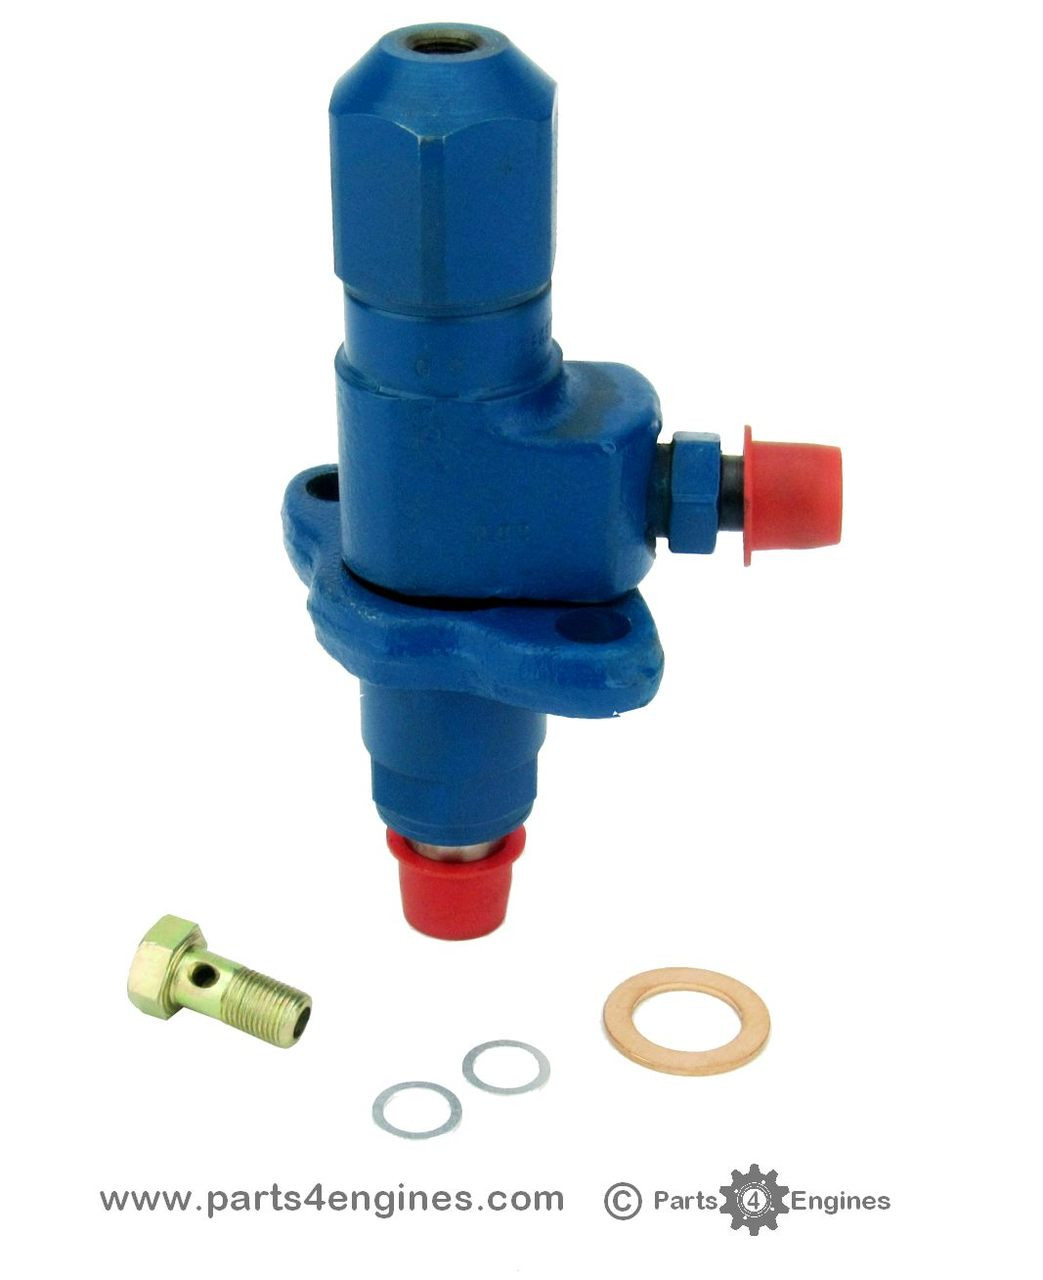 Perkins 4 108 Reconditioned Injector